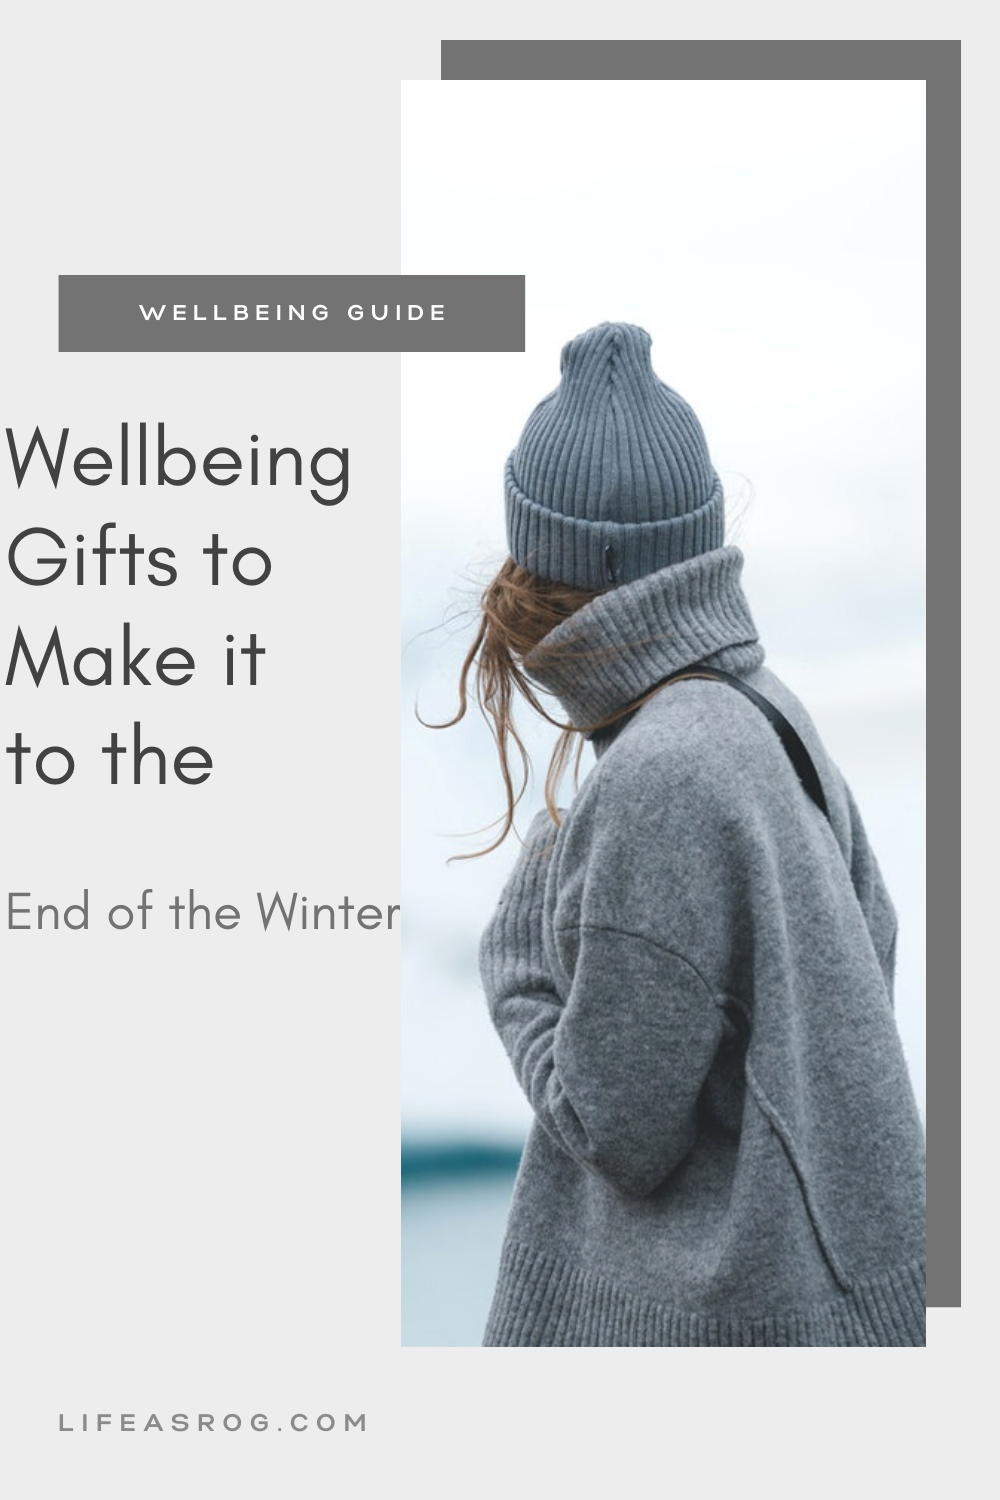 Wellbeing Gifts to Make it to the End of the Winter